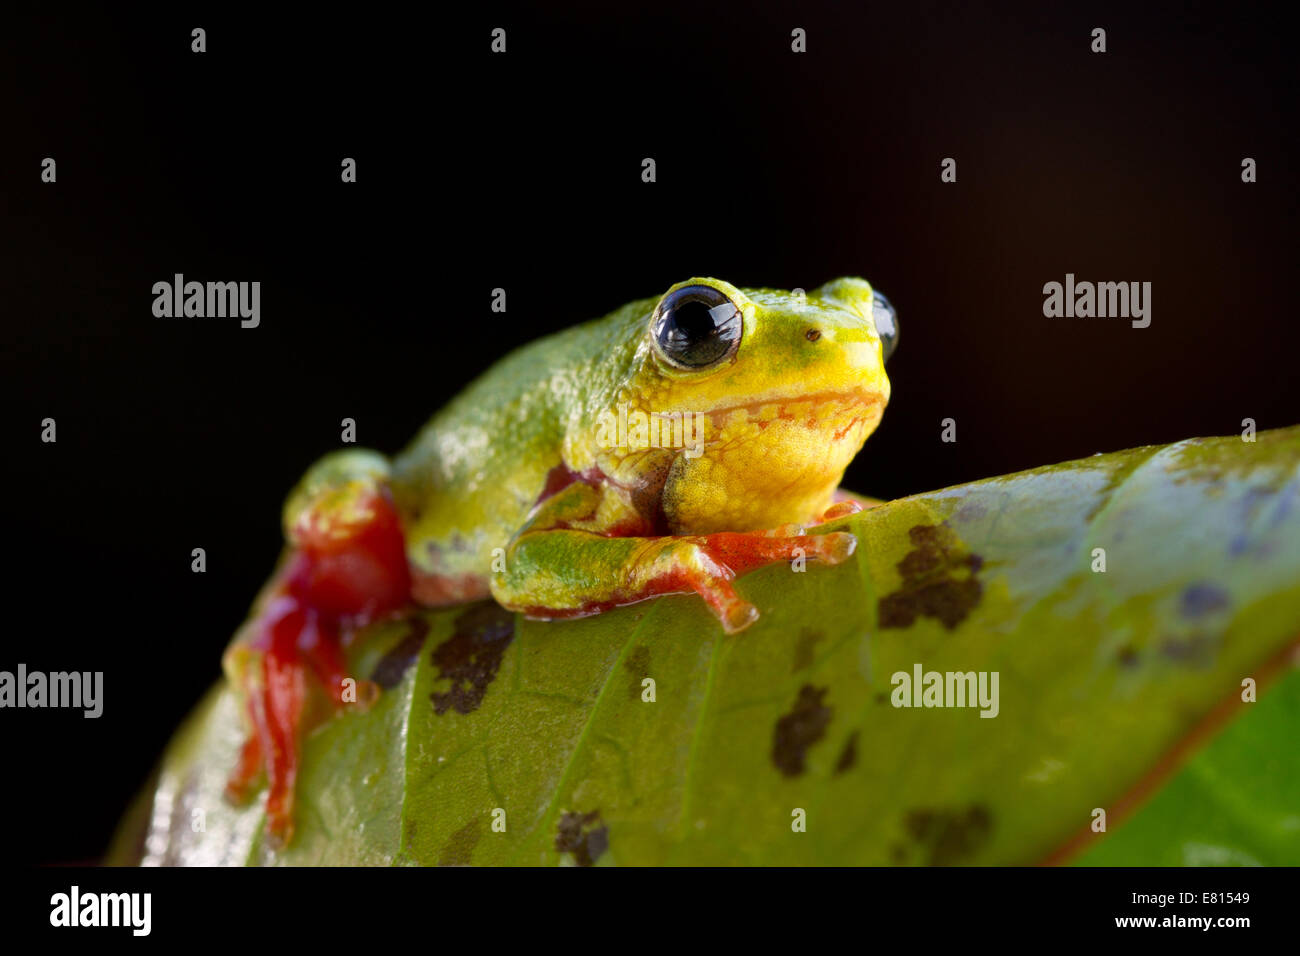 A brightly colored reed frog clings to a leaf in Bangweulu Wetlands, Zambia - Stock Image